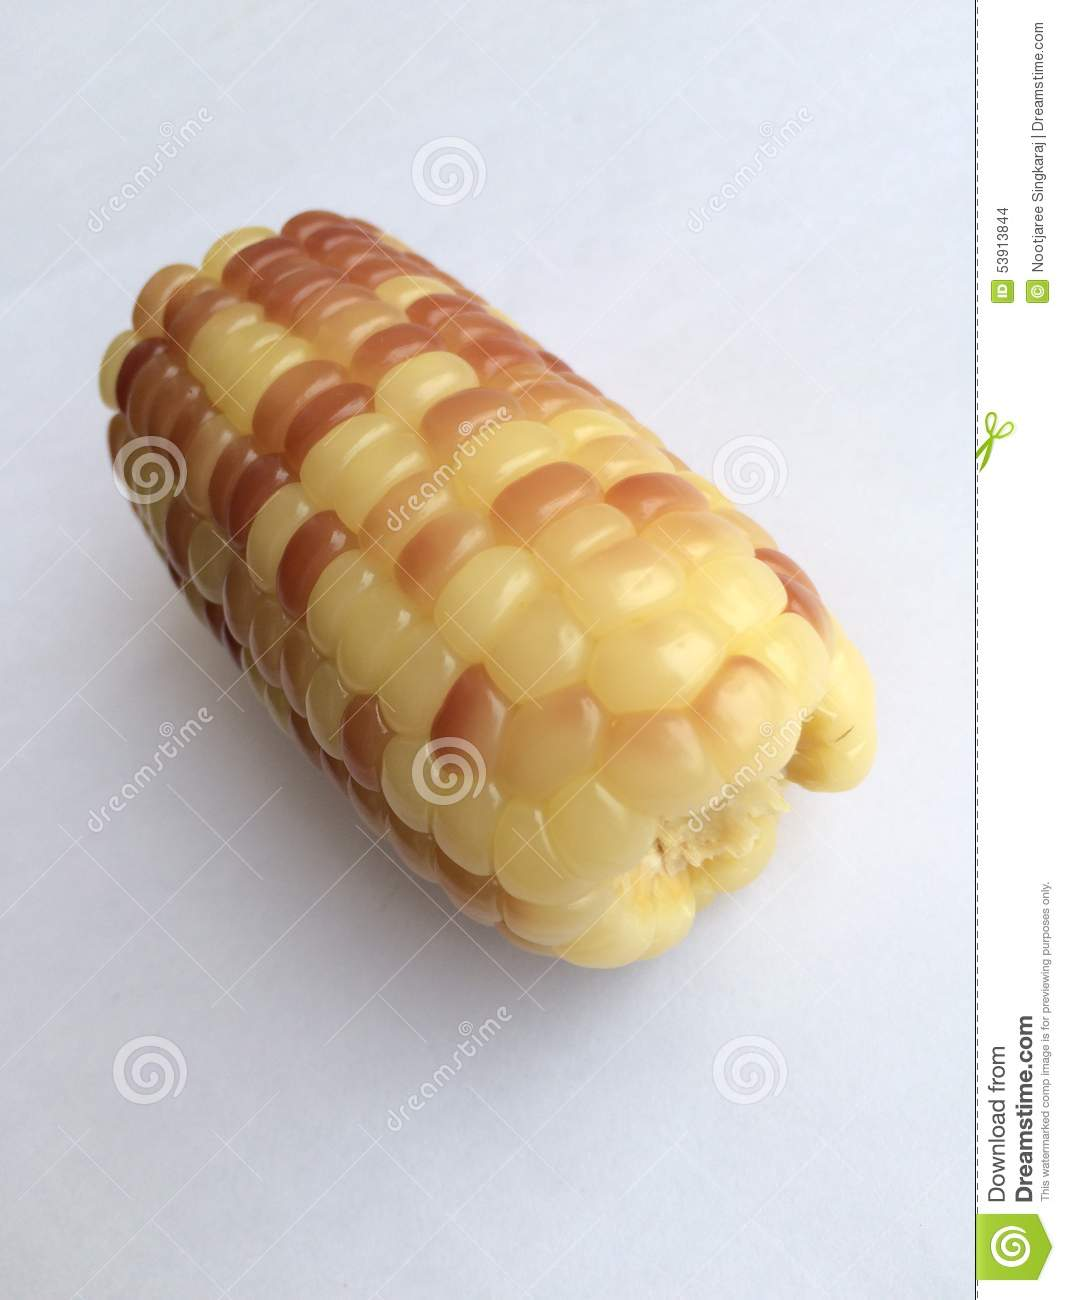 how to cut corn in half